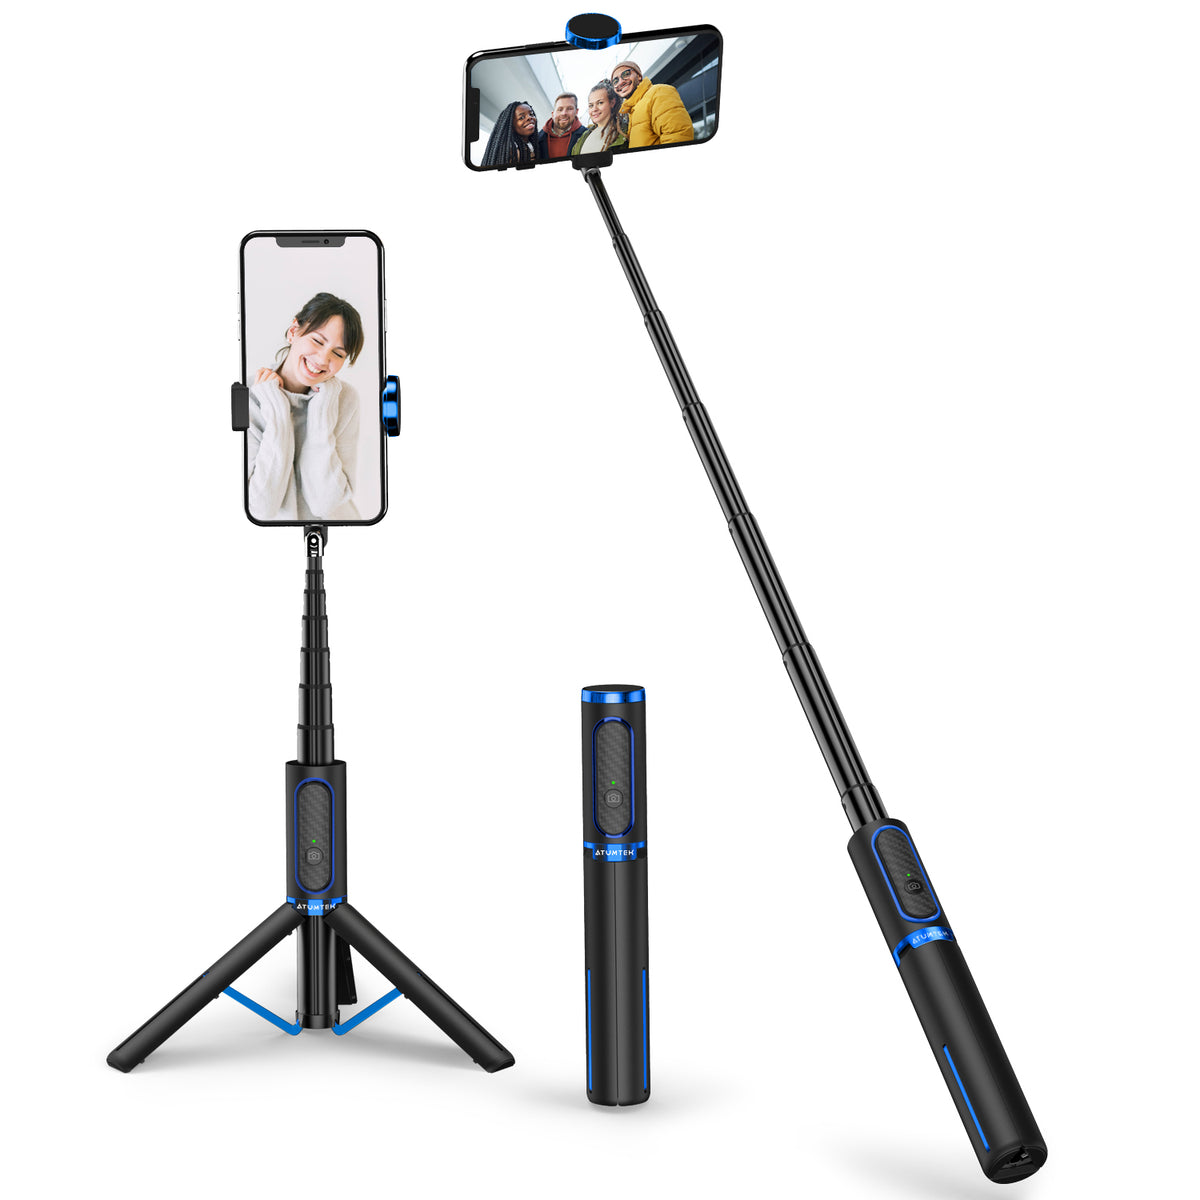 3 in 1 Bluetooth Selfie Stick Tripod with Wireless Remote BLUE-ATUMTEK